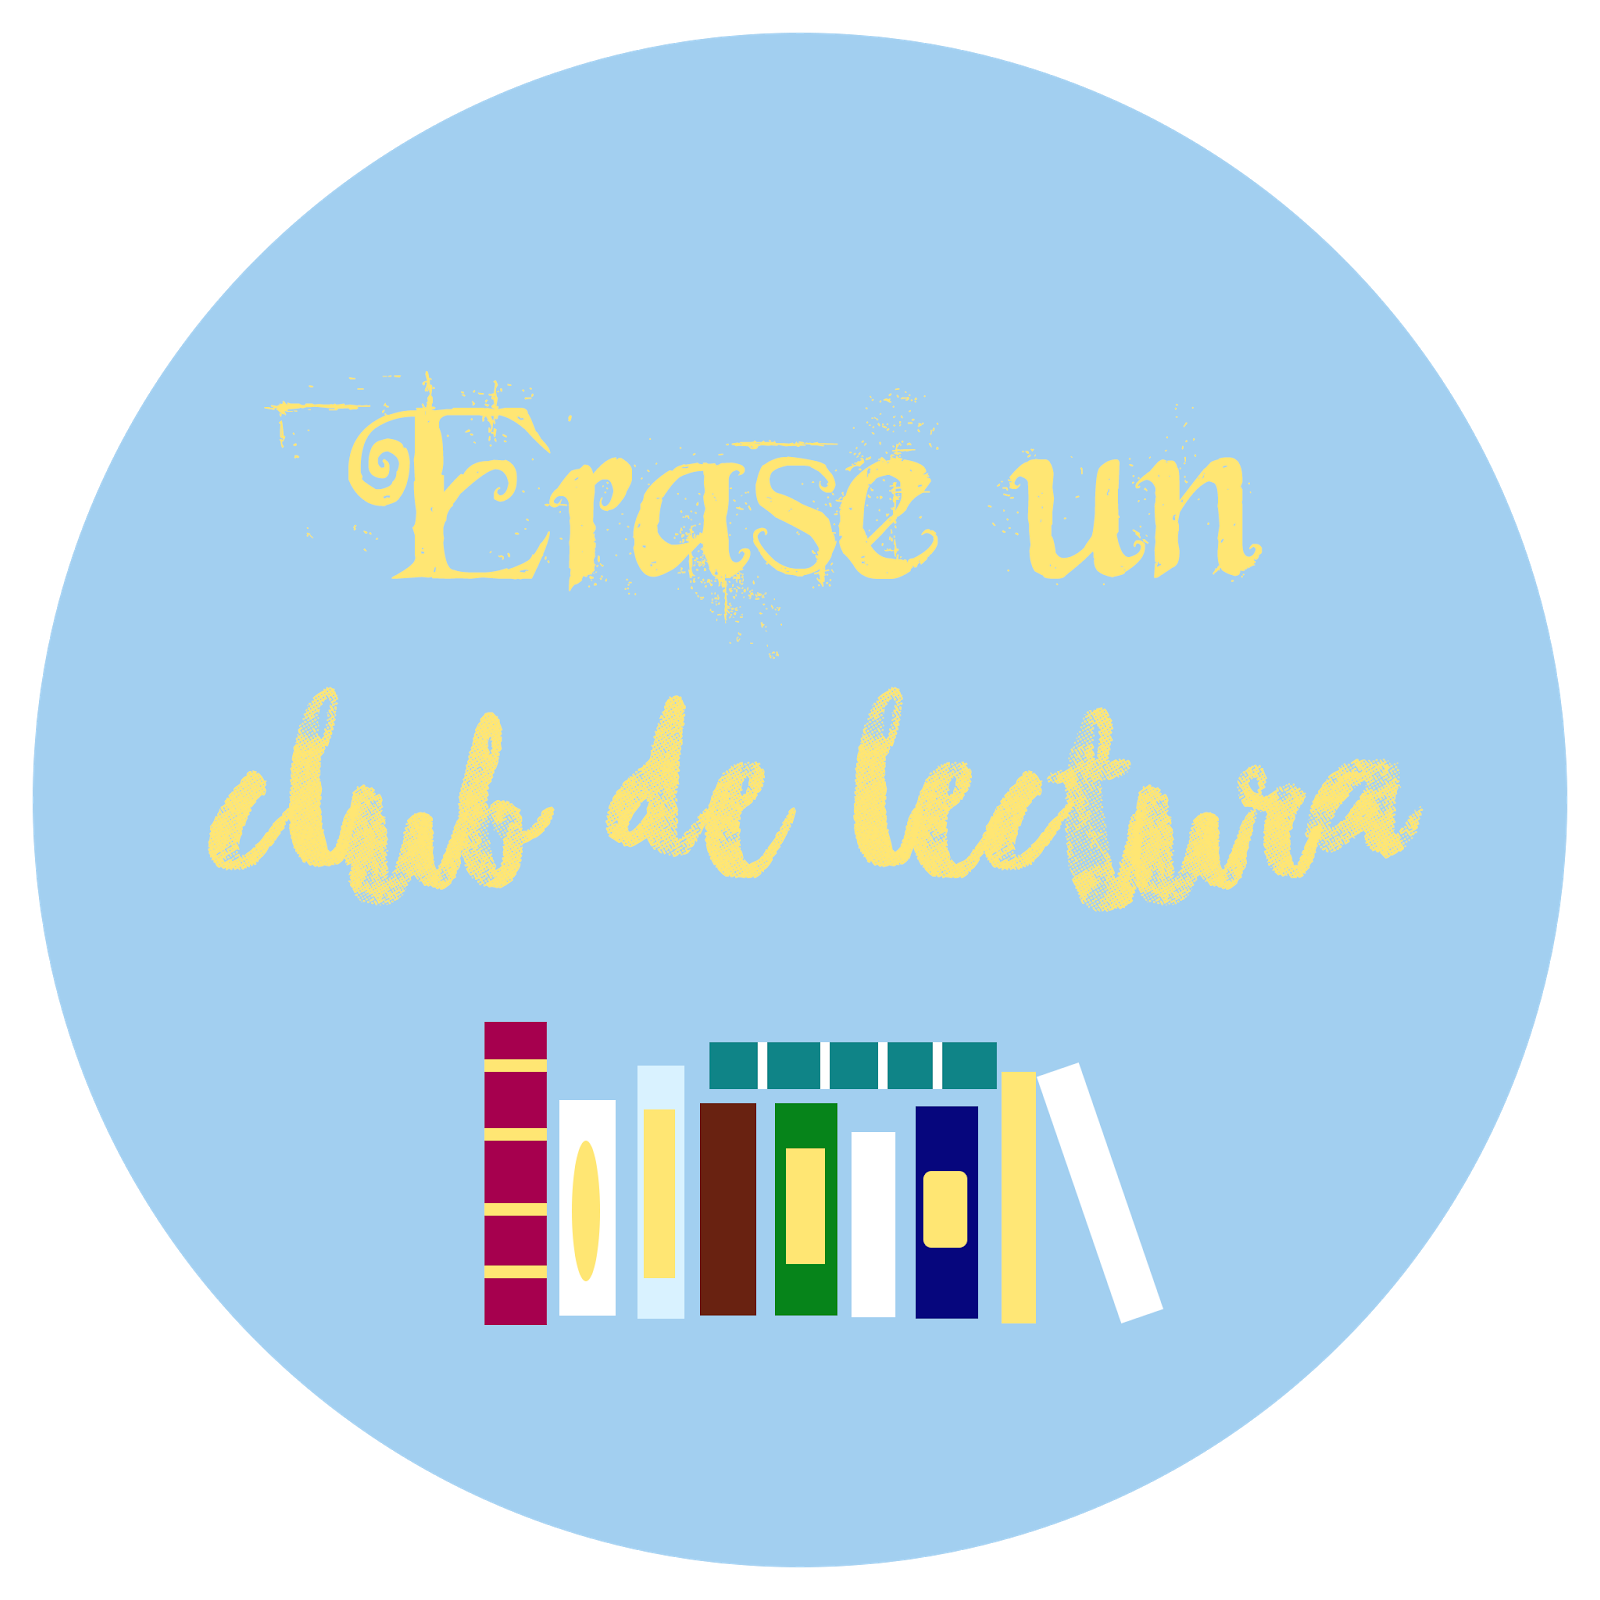 Érase un club de lectura